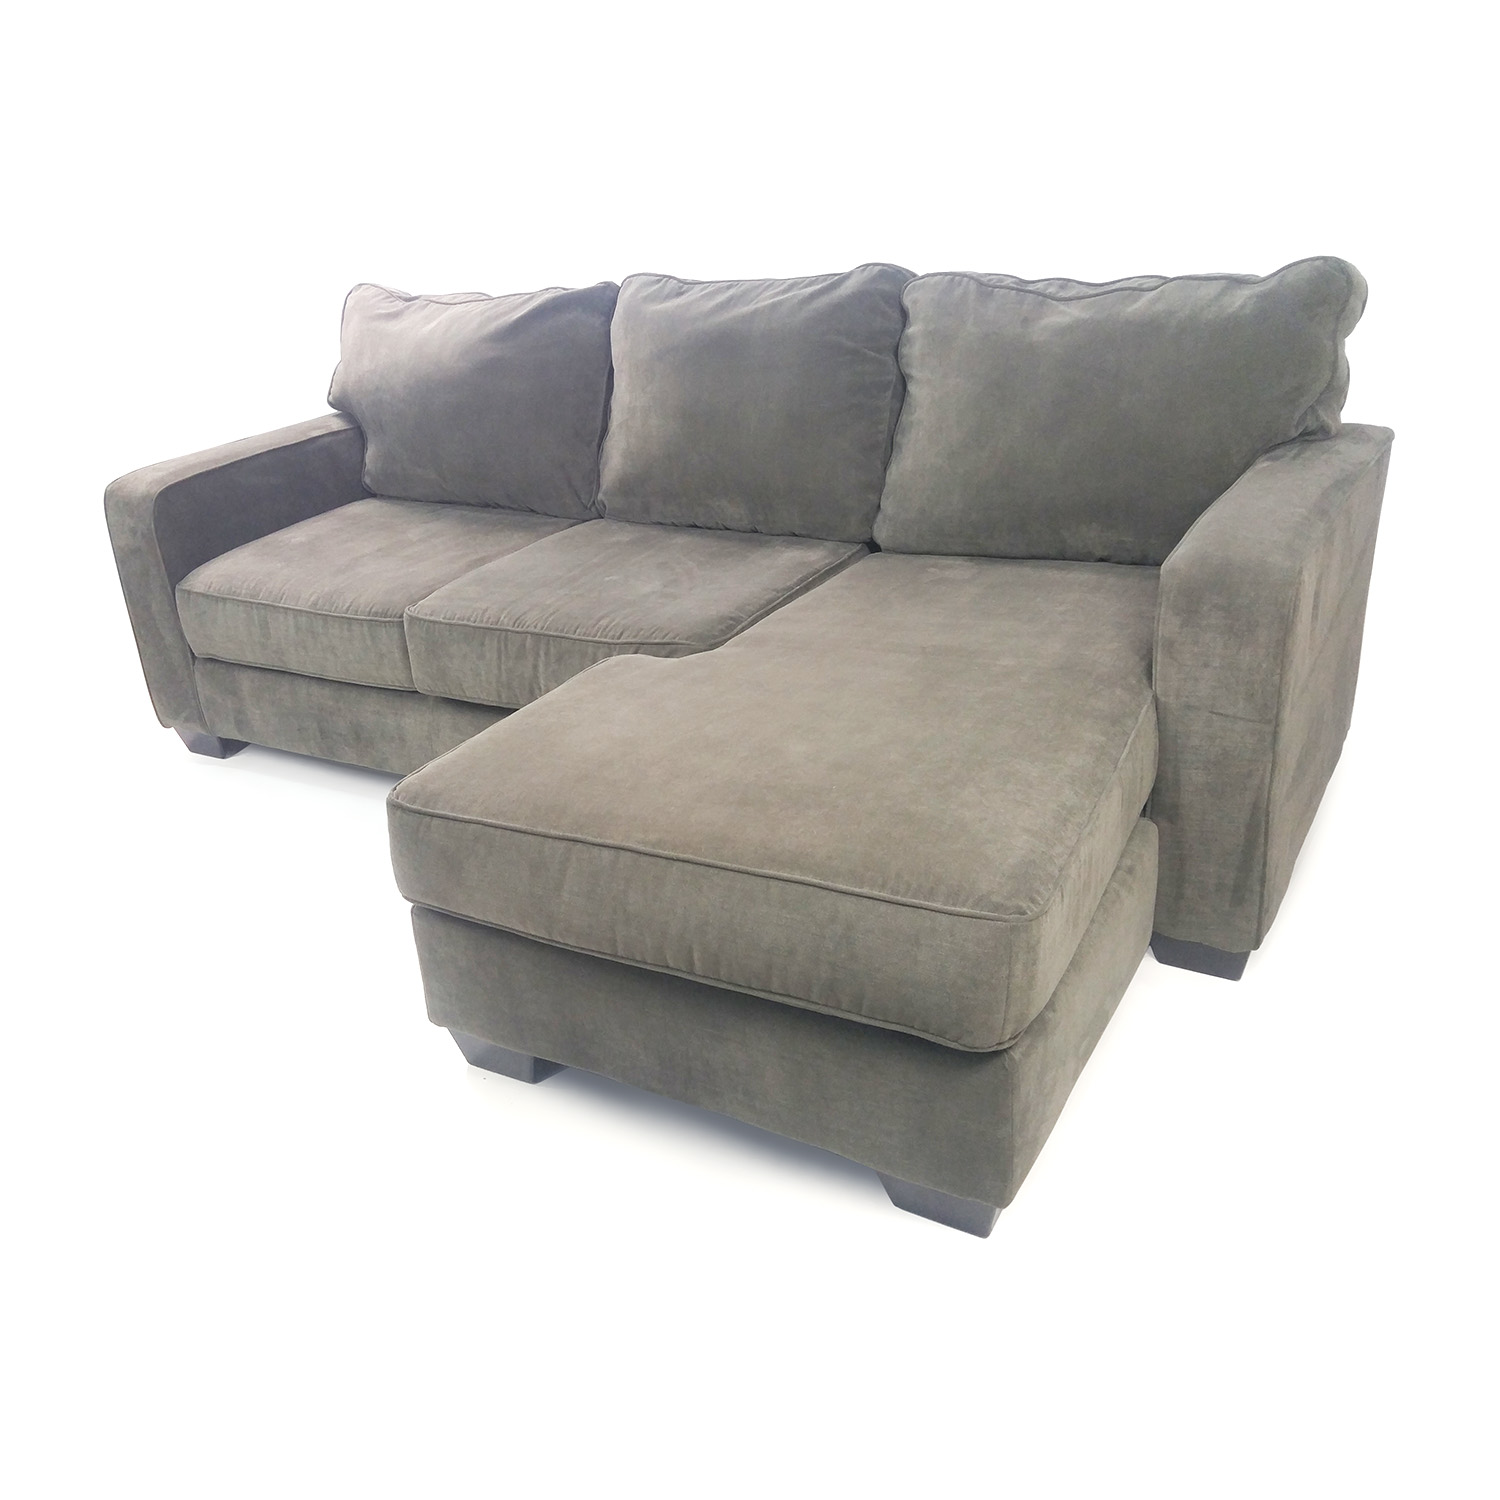 Hodan sofa chaise hodan marble sofa chaise signature for Ashley furniture chaise lounge couch